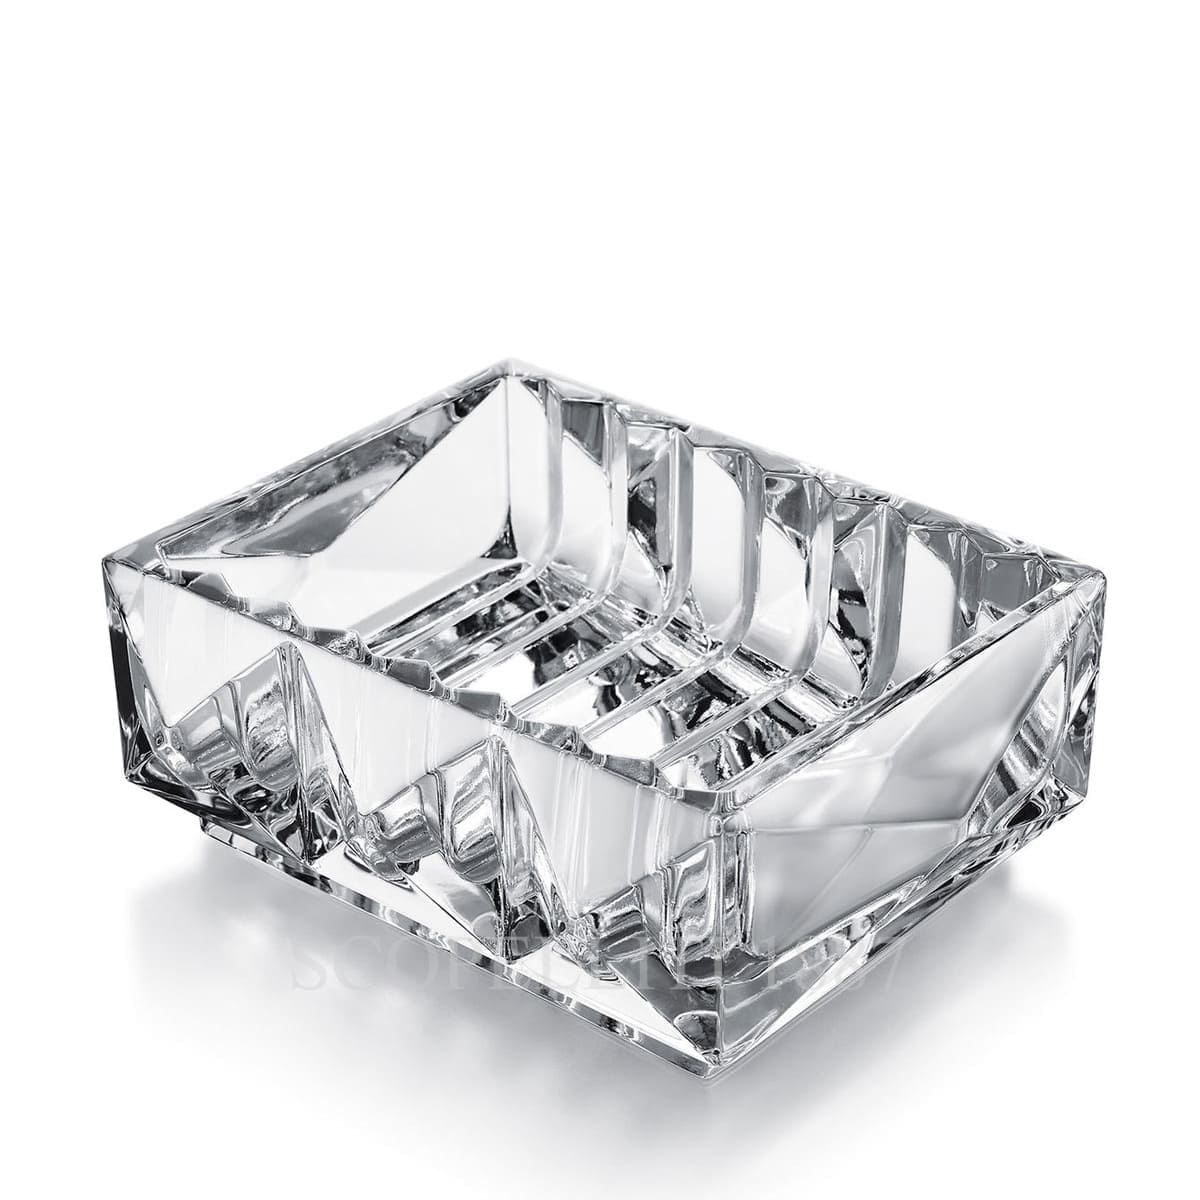 baccarat crystal french design louxor vide poche